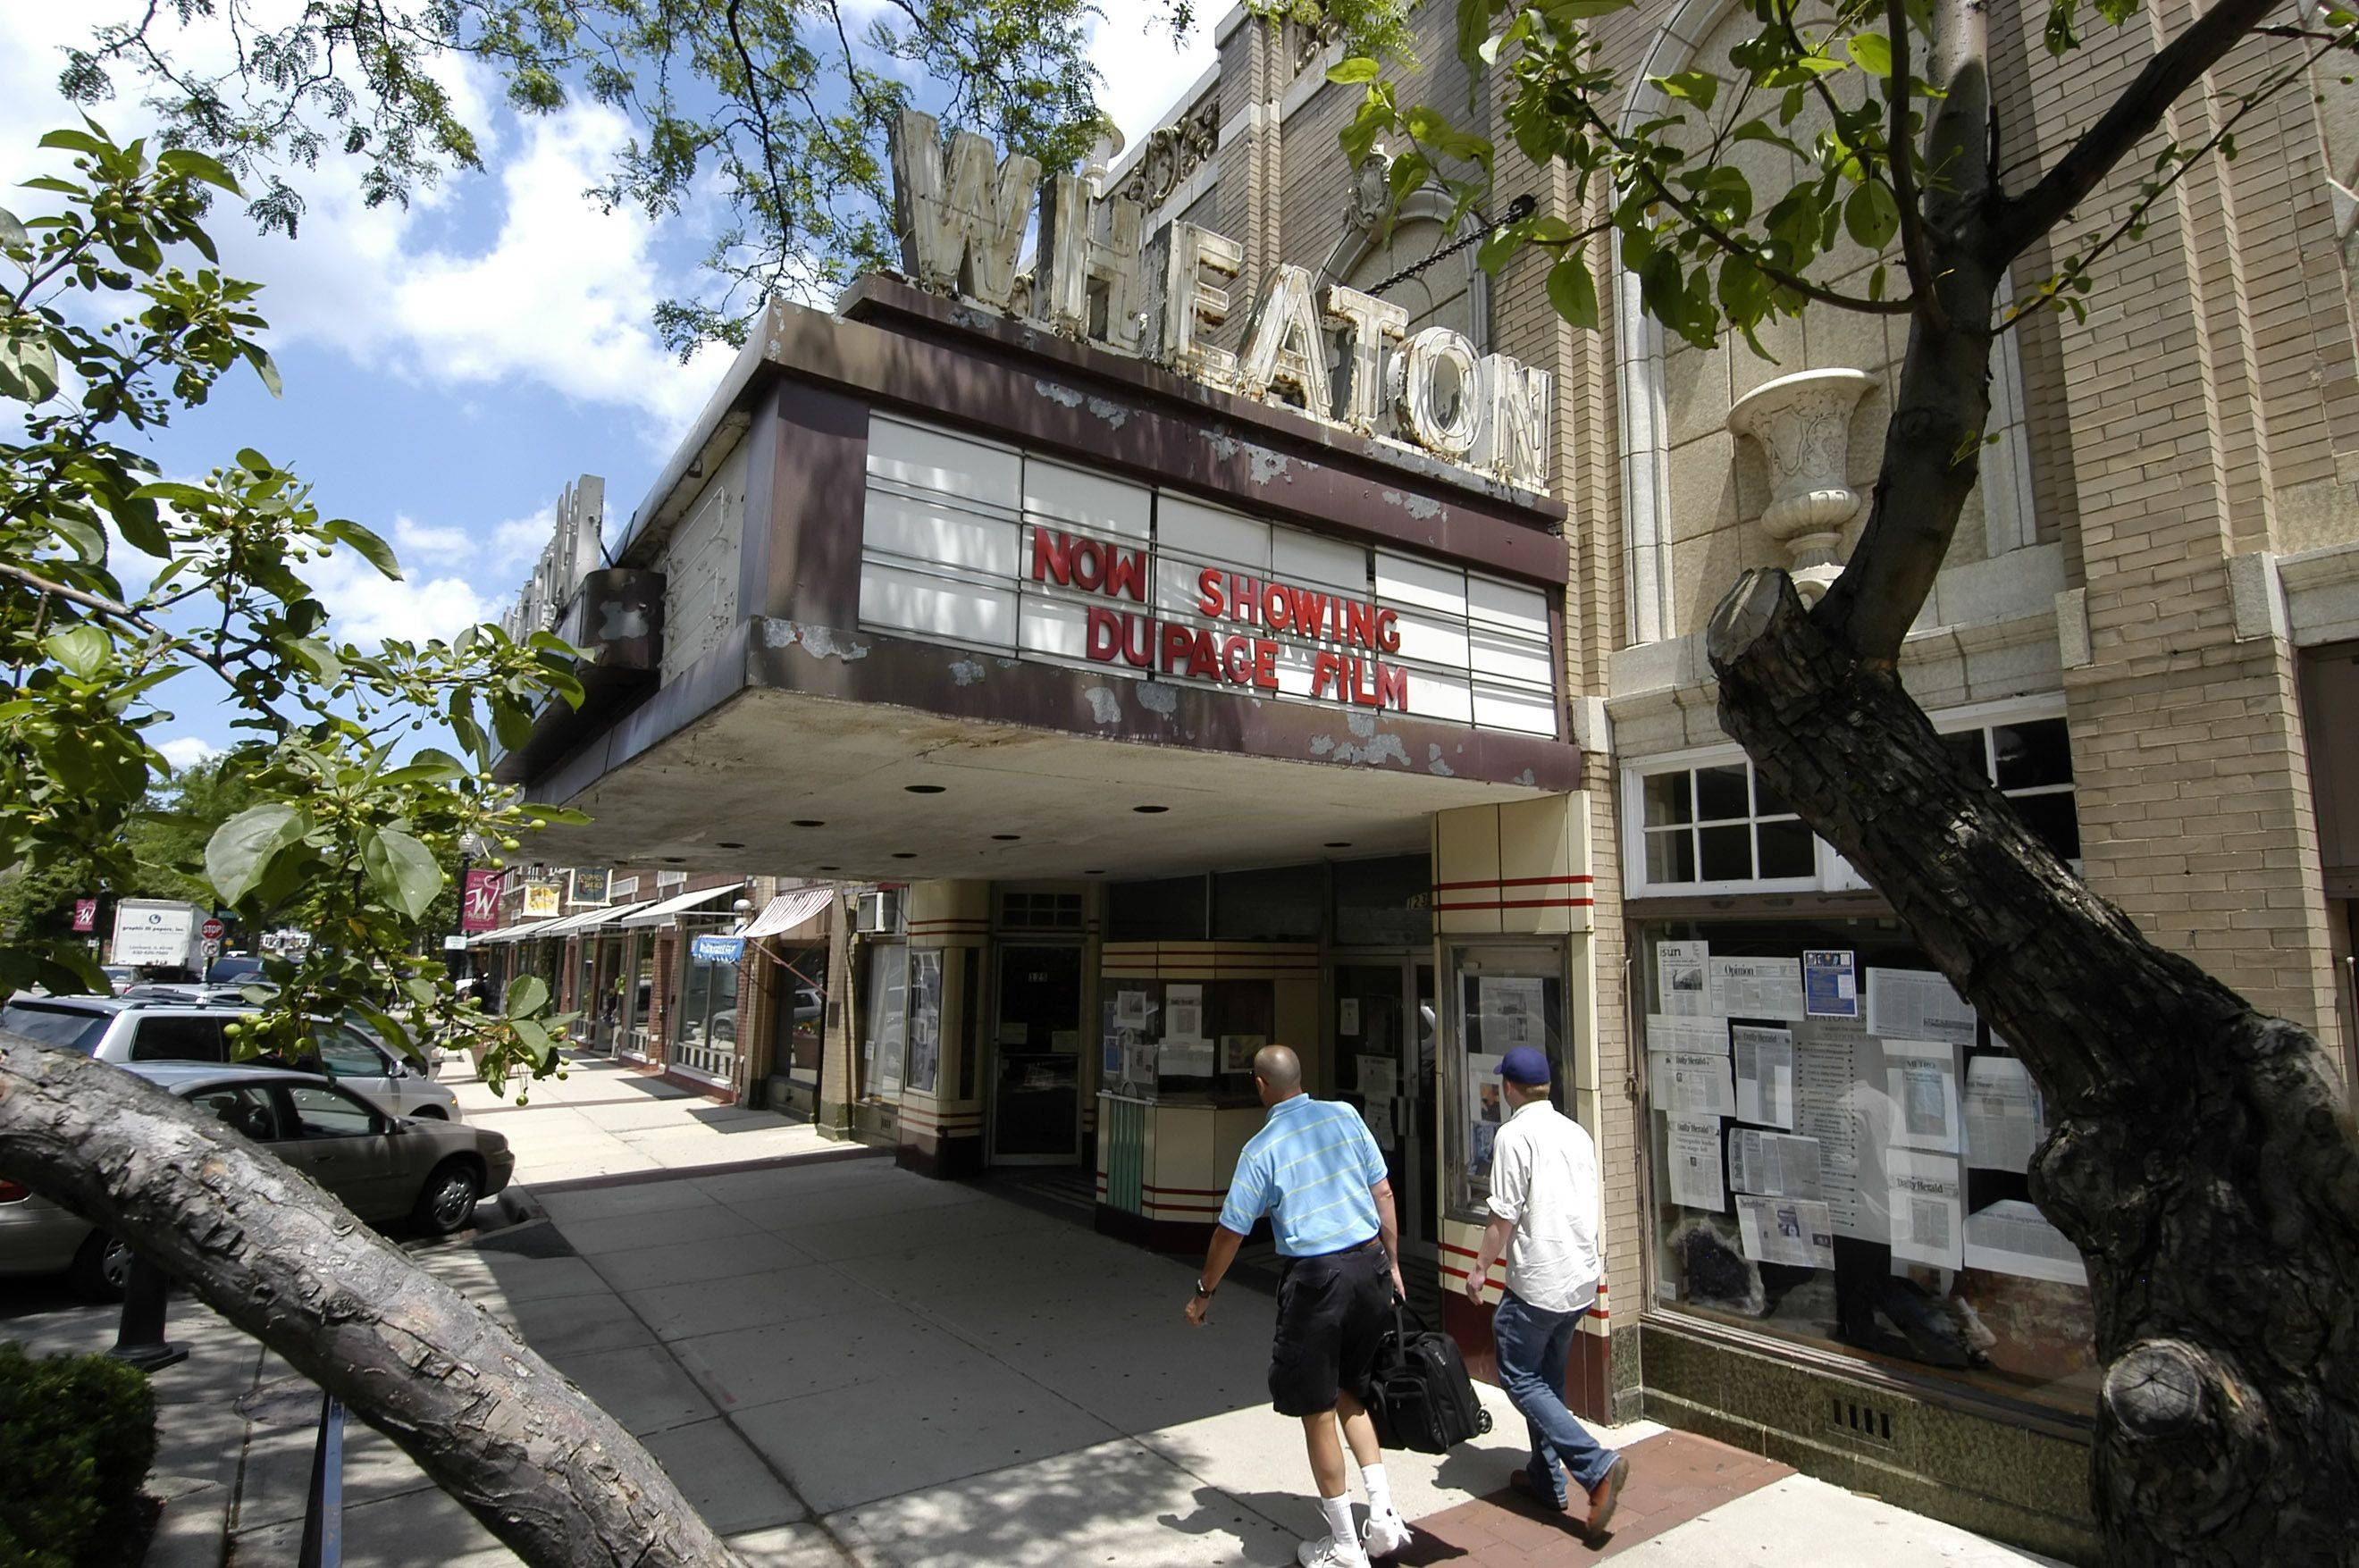 A Wheaton City Council candidate says the city should have nothing to do with future funding of the Wheaton Grand Theater. Other candidates, however, say it could be part of a plan that could revitalize downtown.